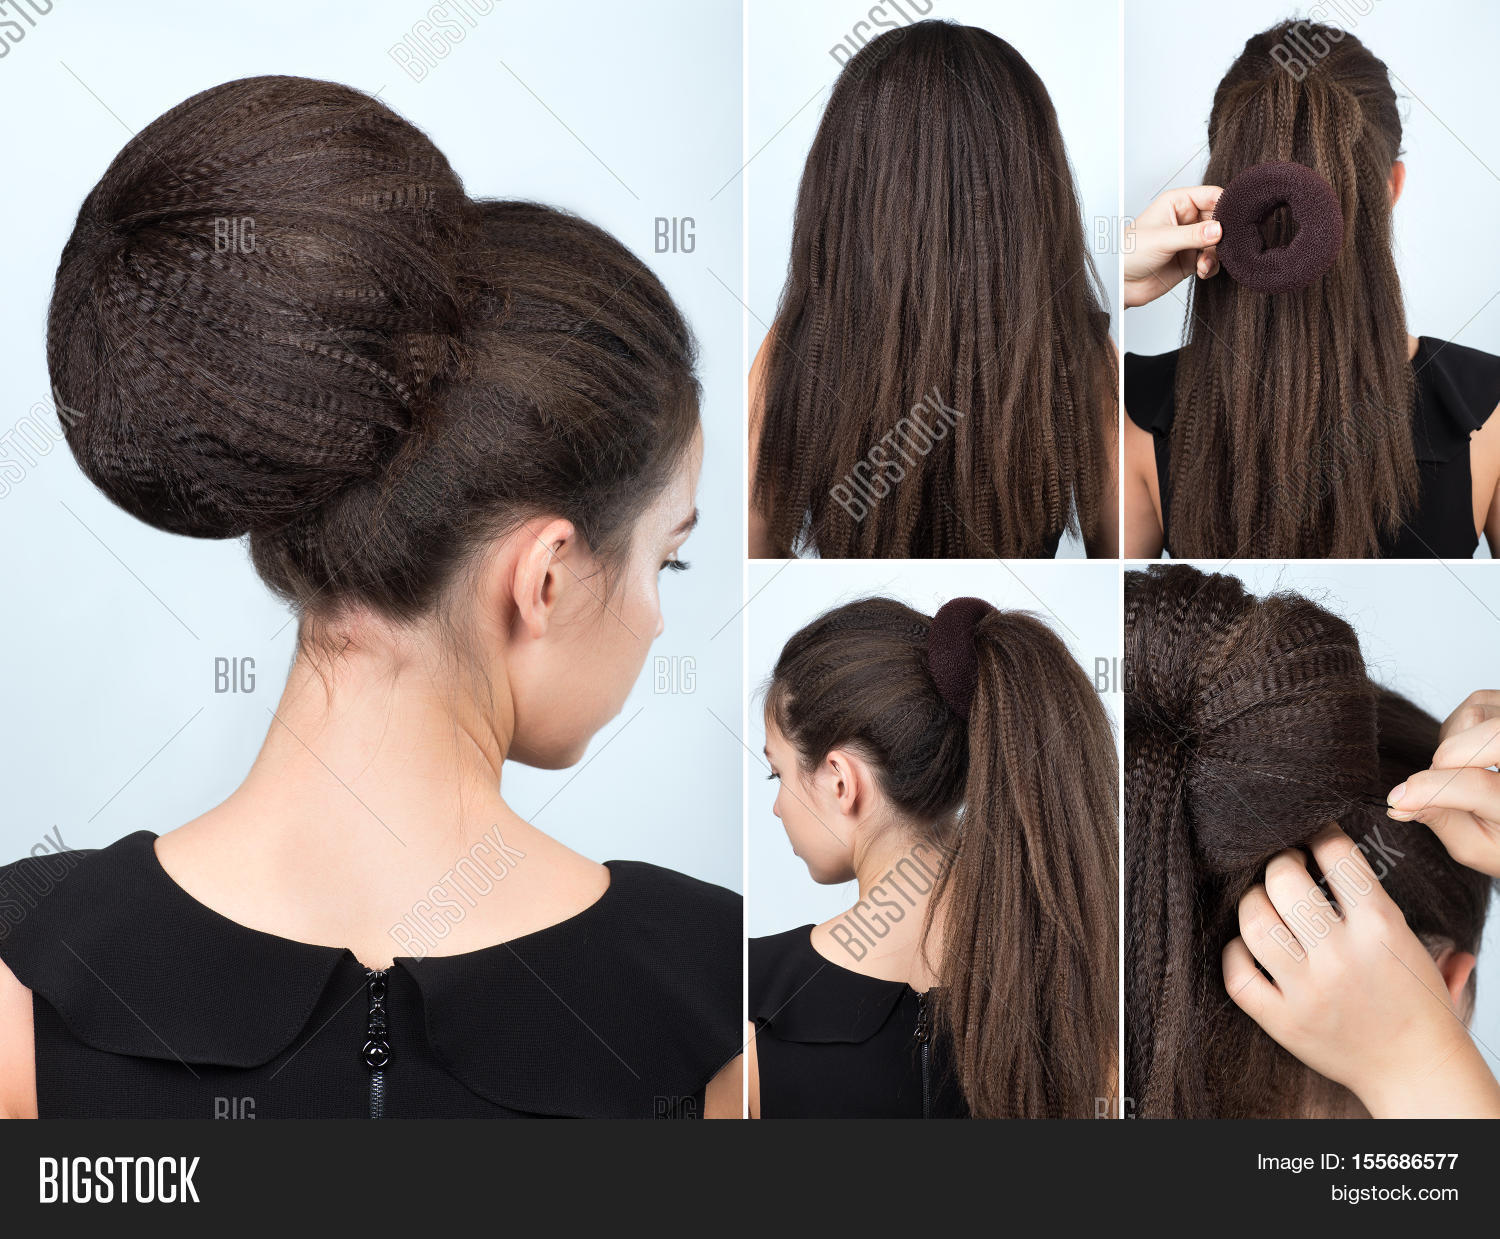 Hairstyle Tutorial Image Photo Free Trial Bigstock